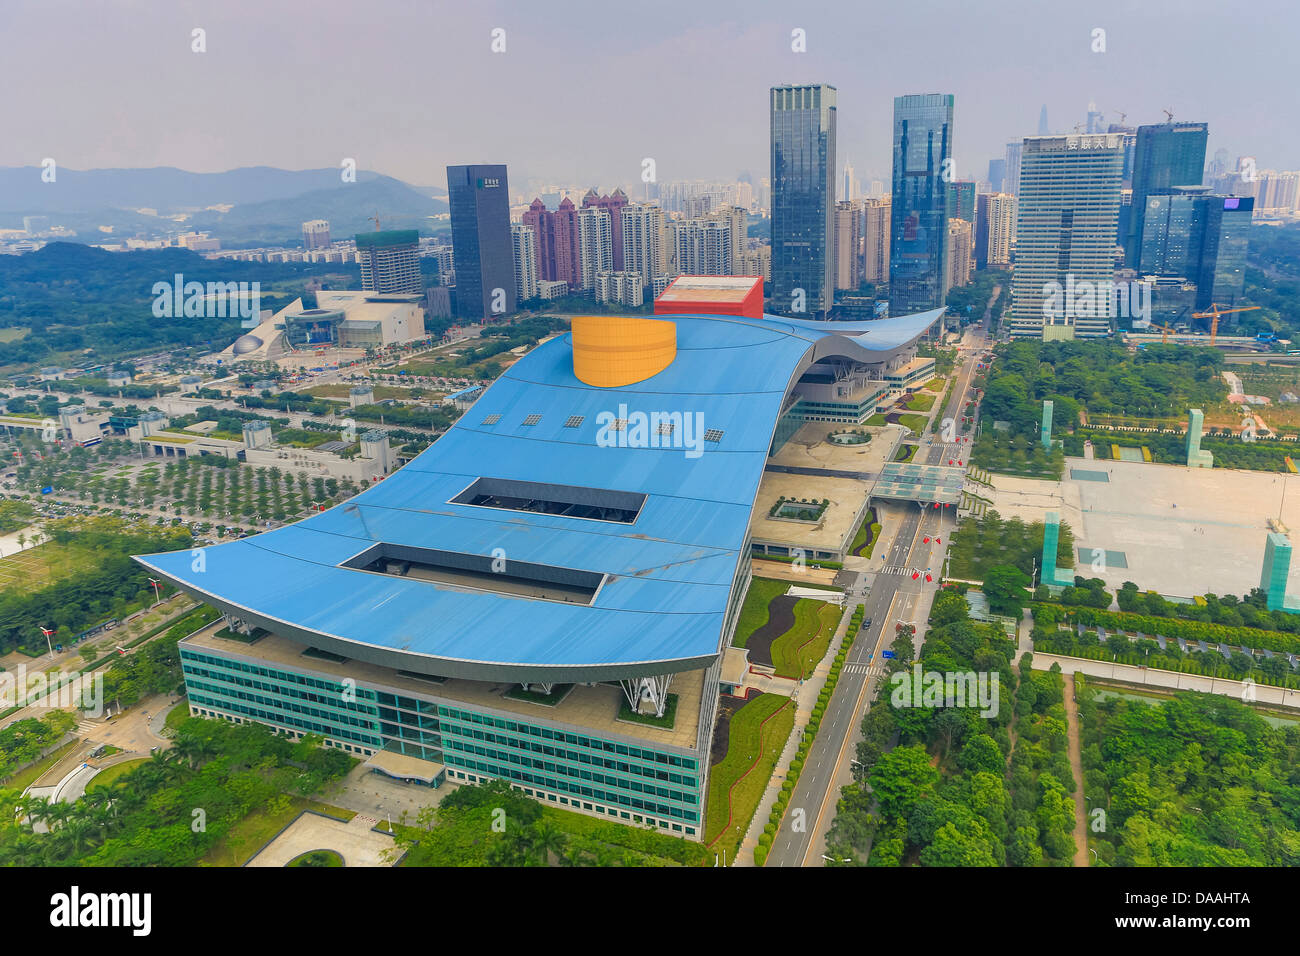 China, Shenzhen, City, Asia, Downtown, Civic Center, architecture, big, center, civic, design, downtown, huge, roof, - Stock Image